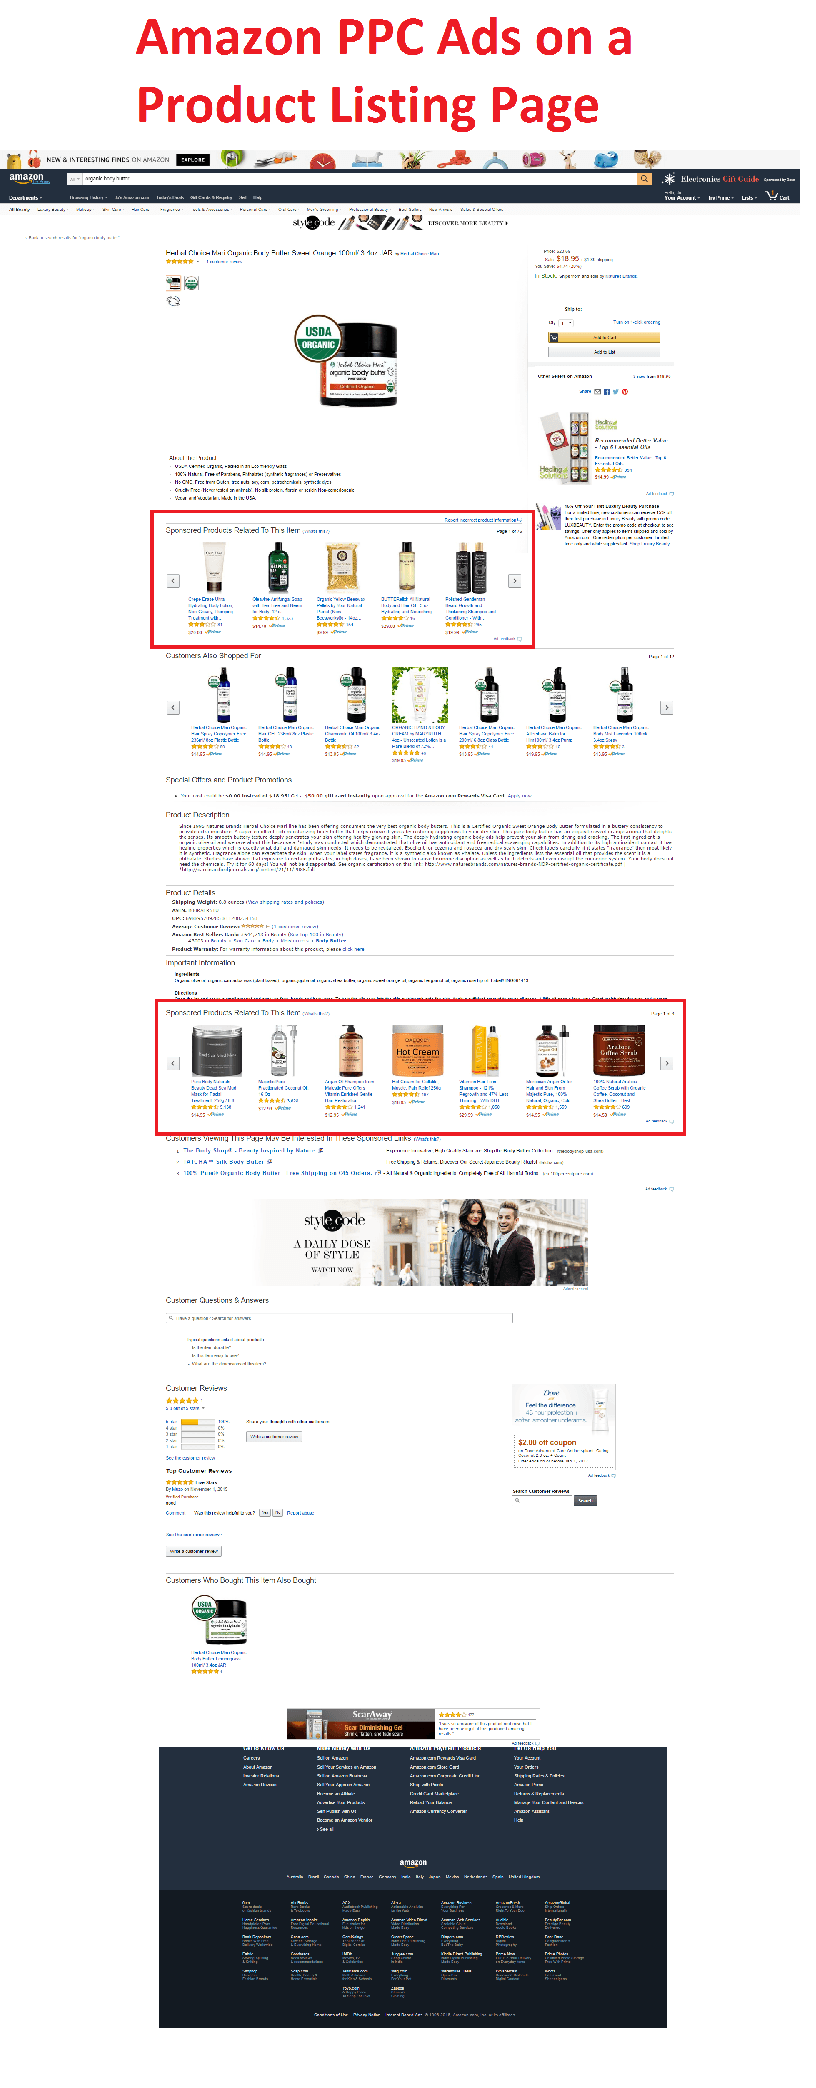 Amazon PPC Ads in Product Listing Page